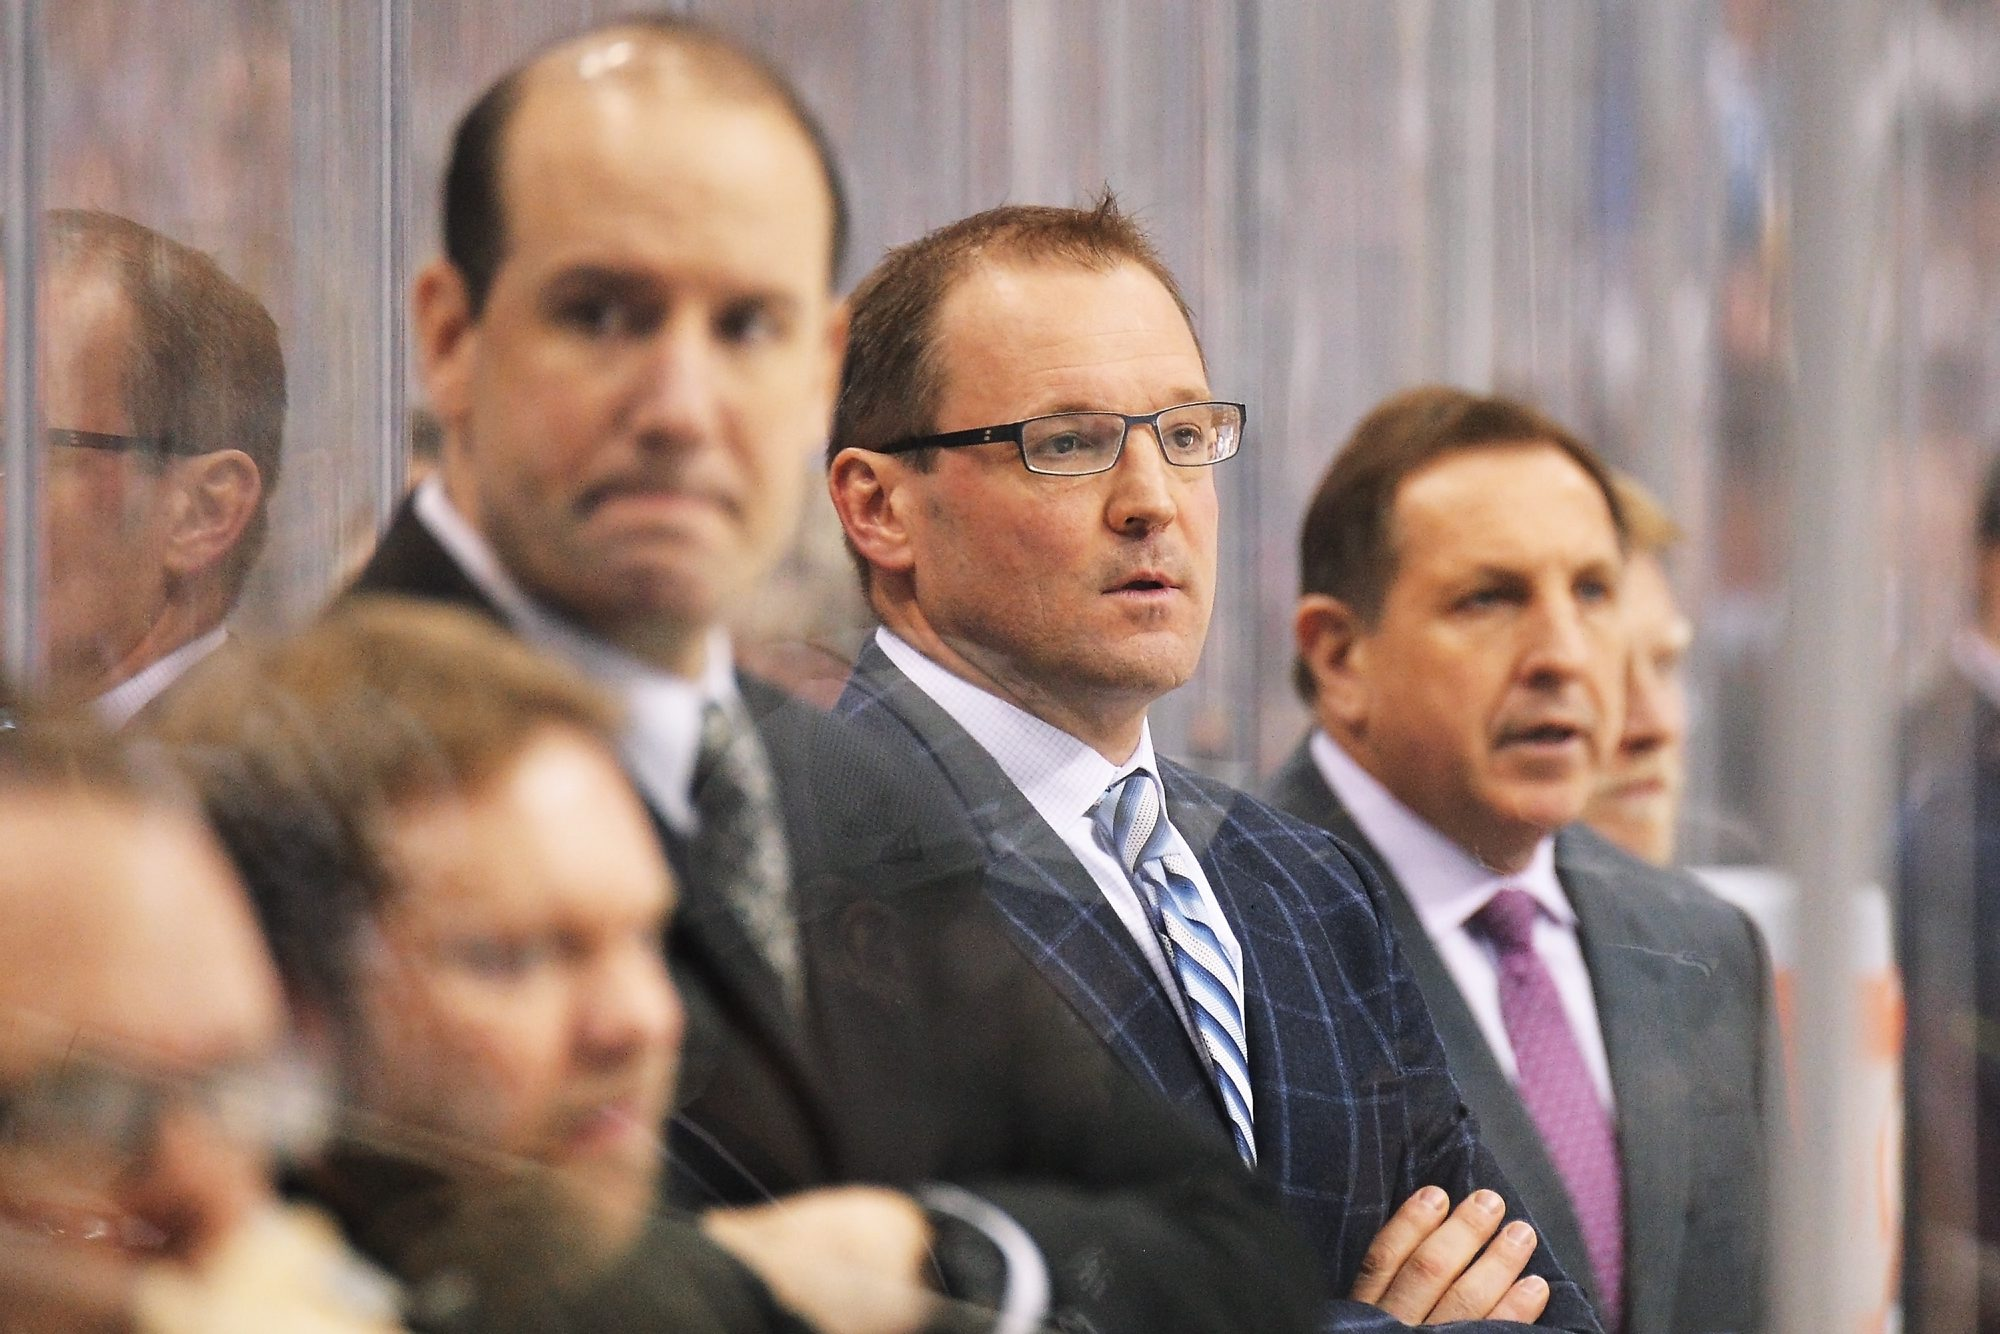 Former Penguins head coach Dan Bylsma heads the list of potential candidates to coach the Sabres after Red Wings coach Mike Babcock opted to coach the Maple Leafs instead of Buffalo.